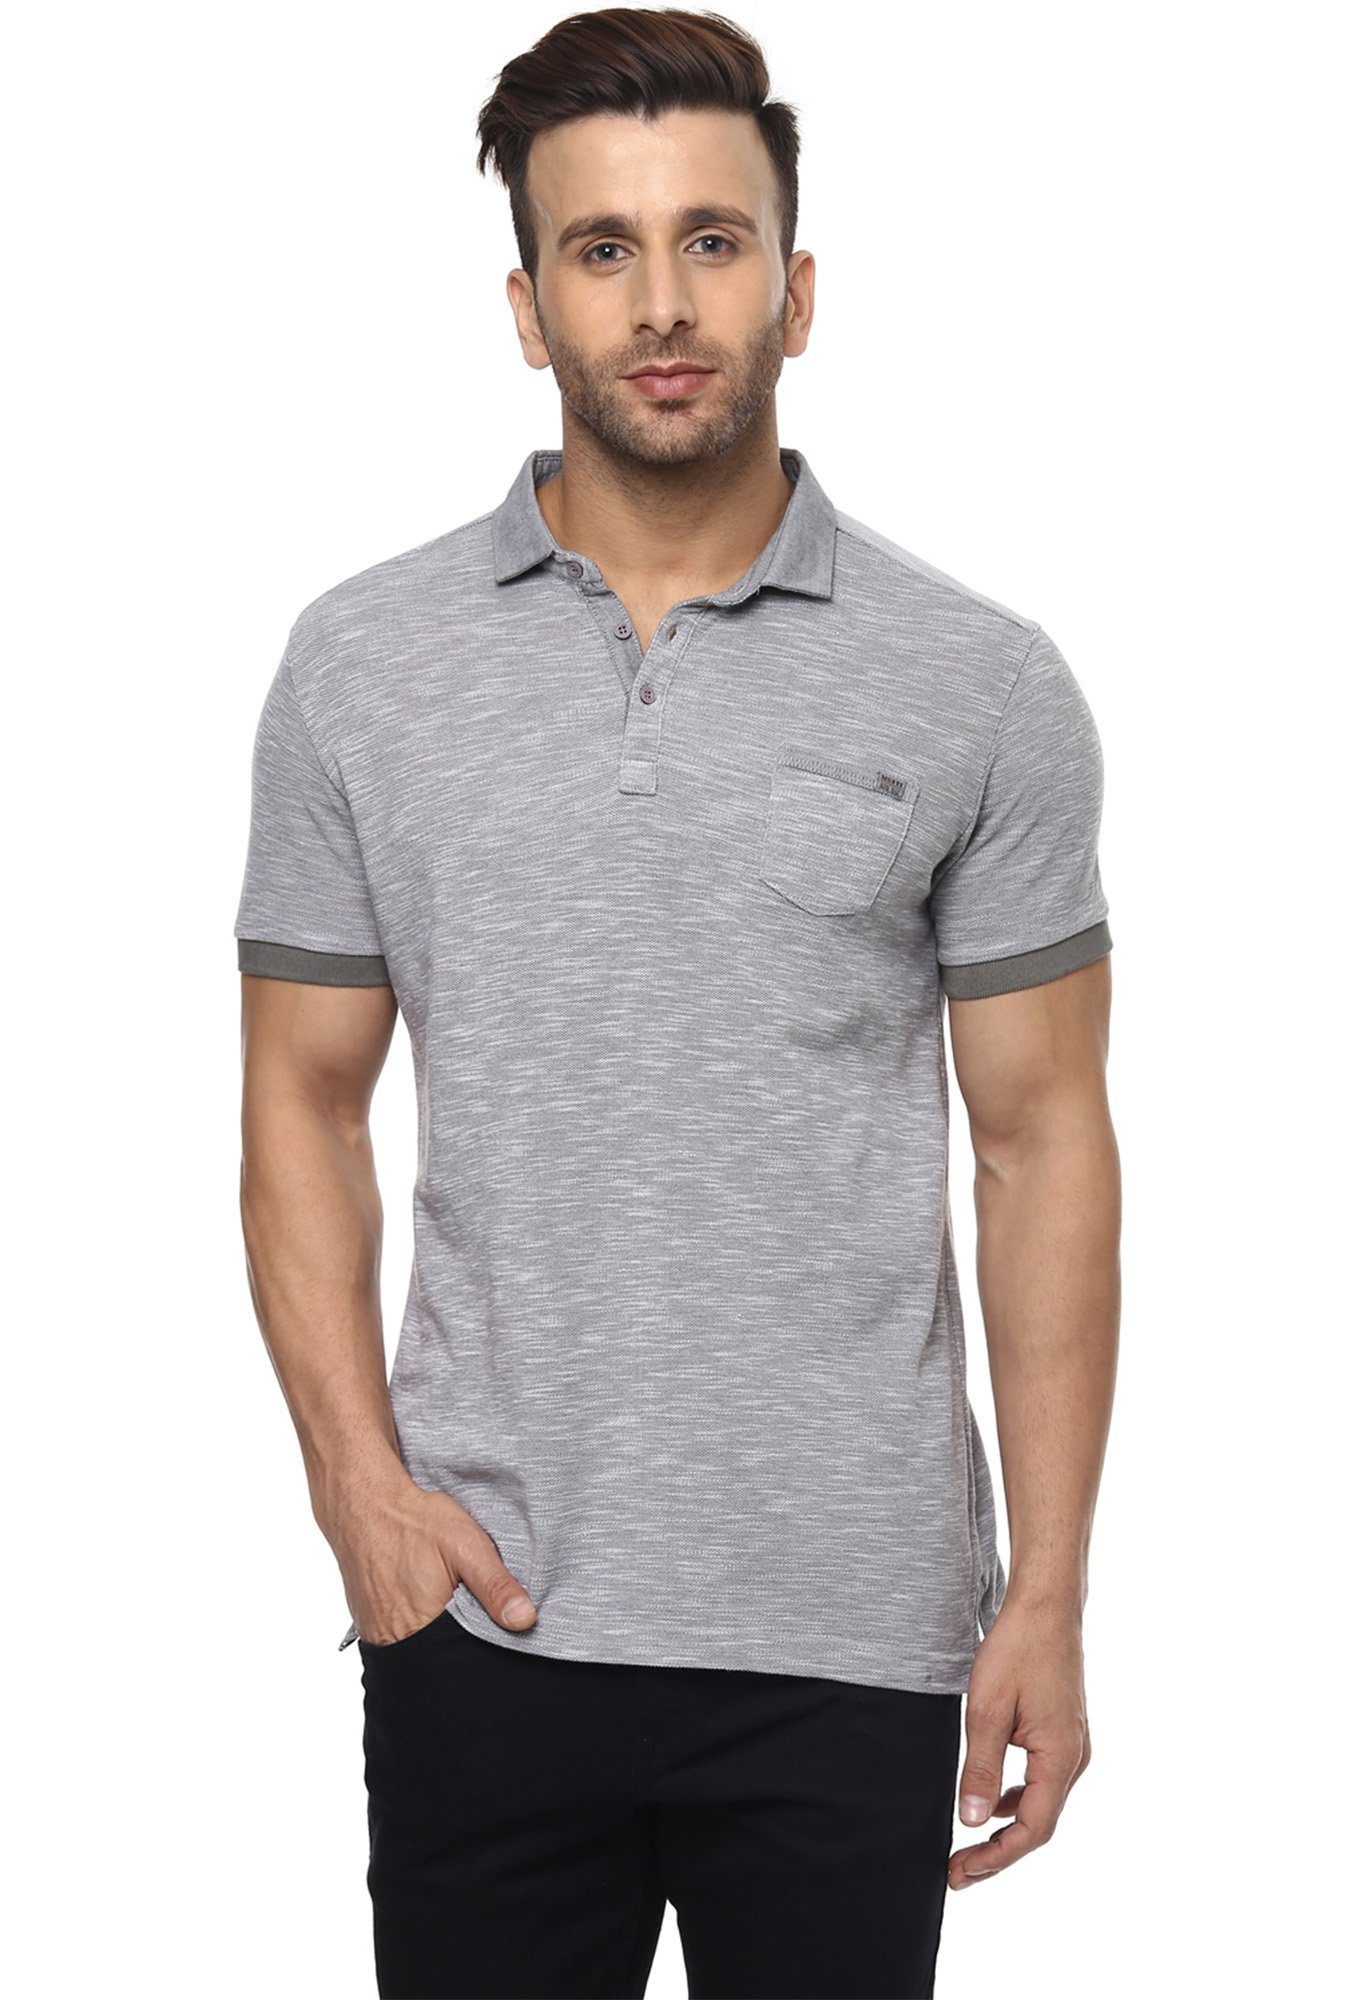 Mufti Grey Half Sleeves Slim Fit Cotton T-Shirt